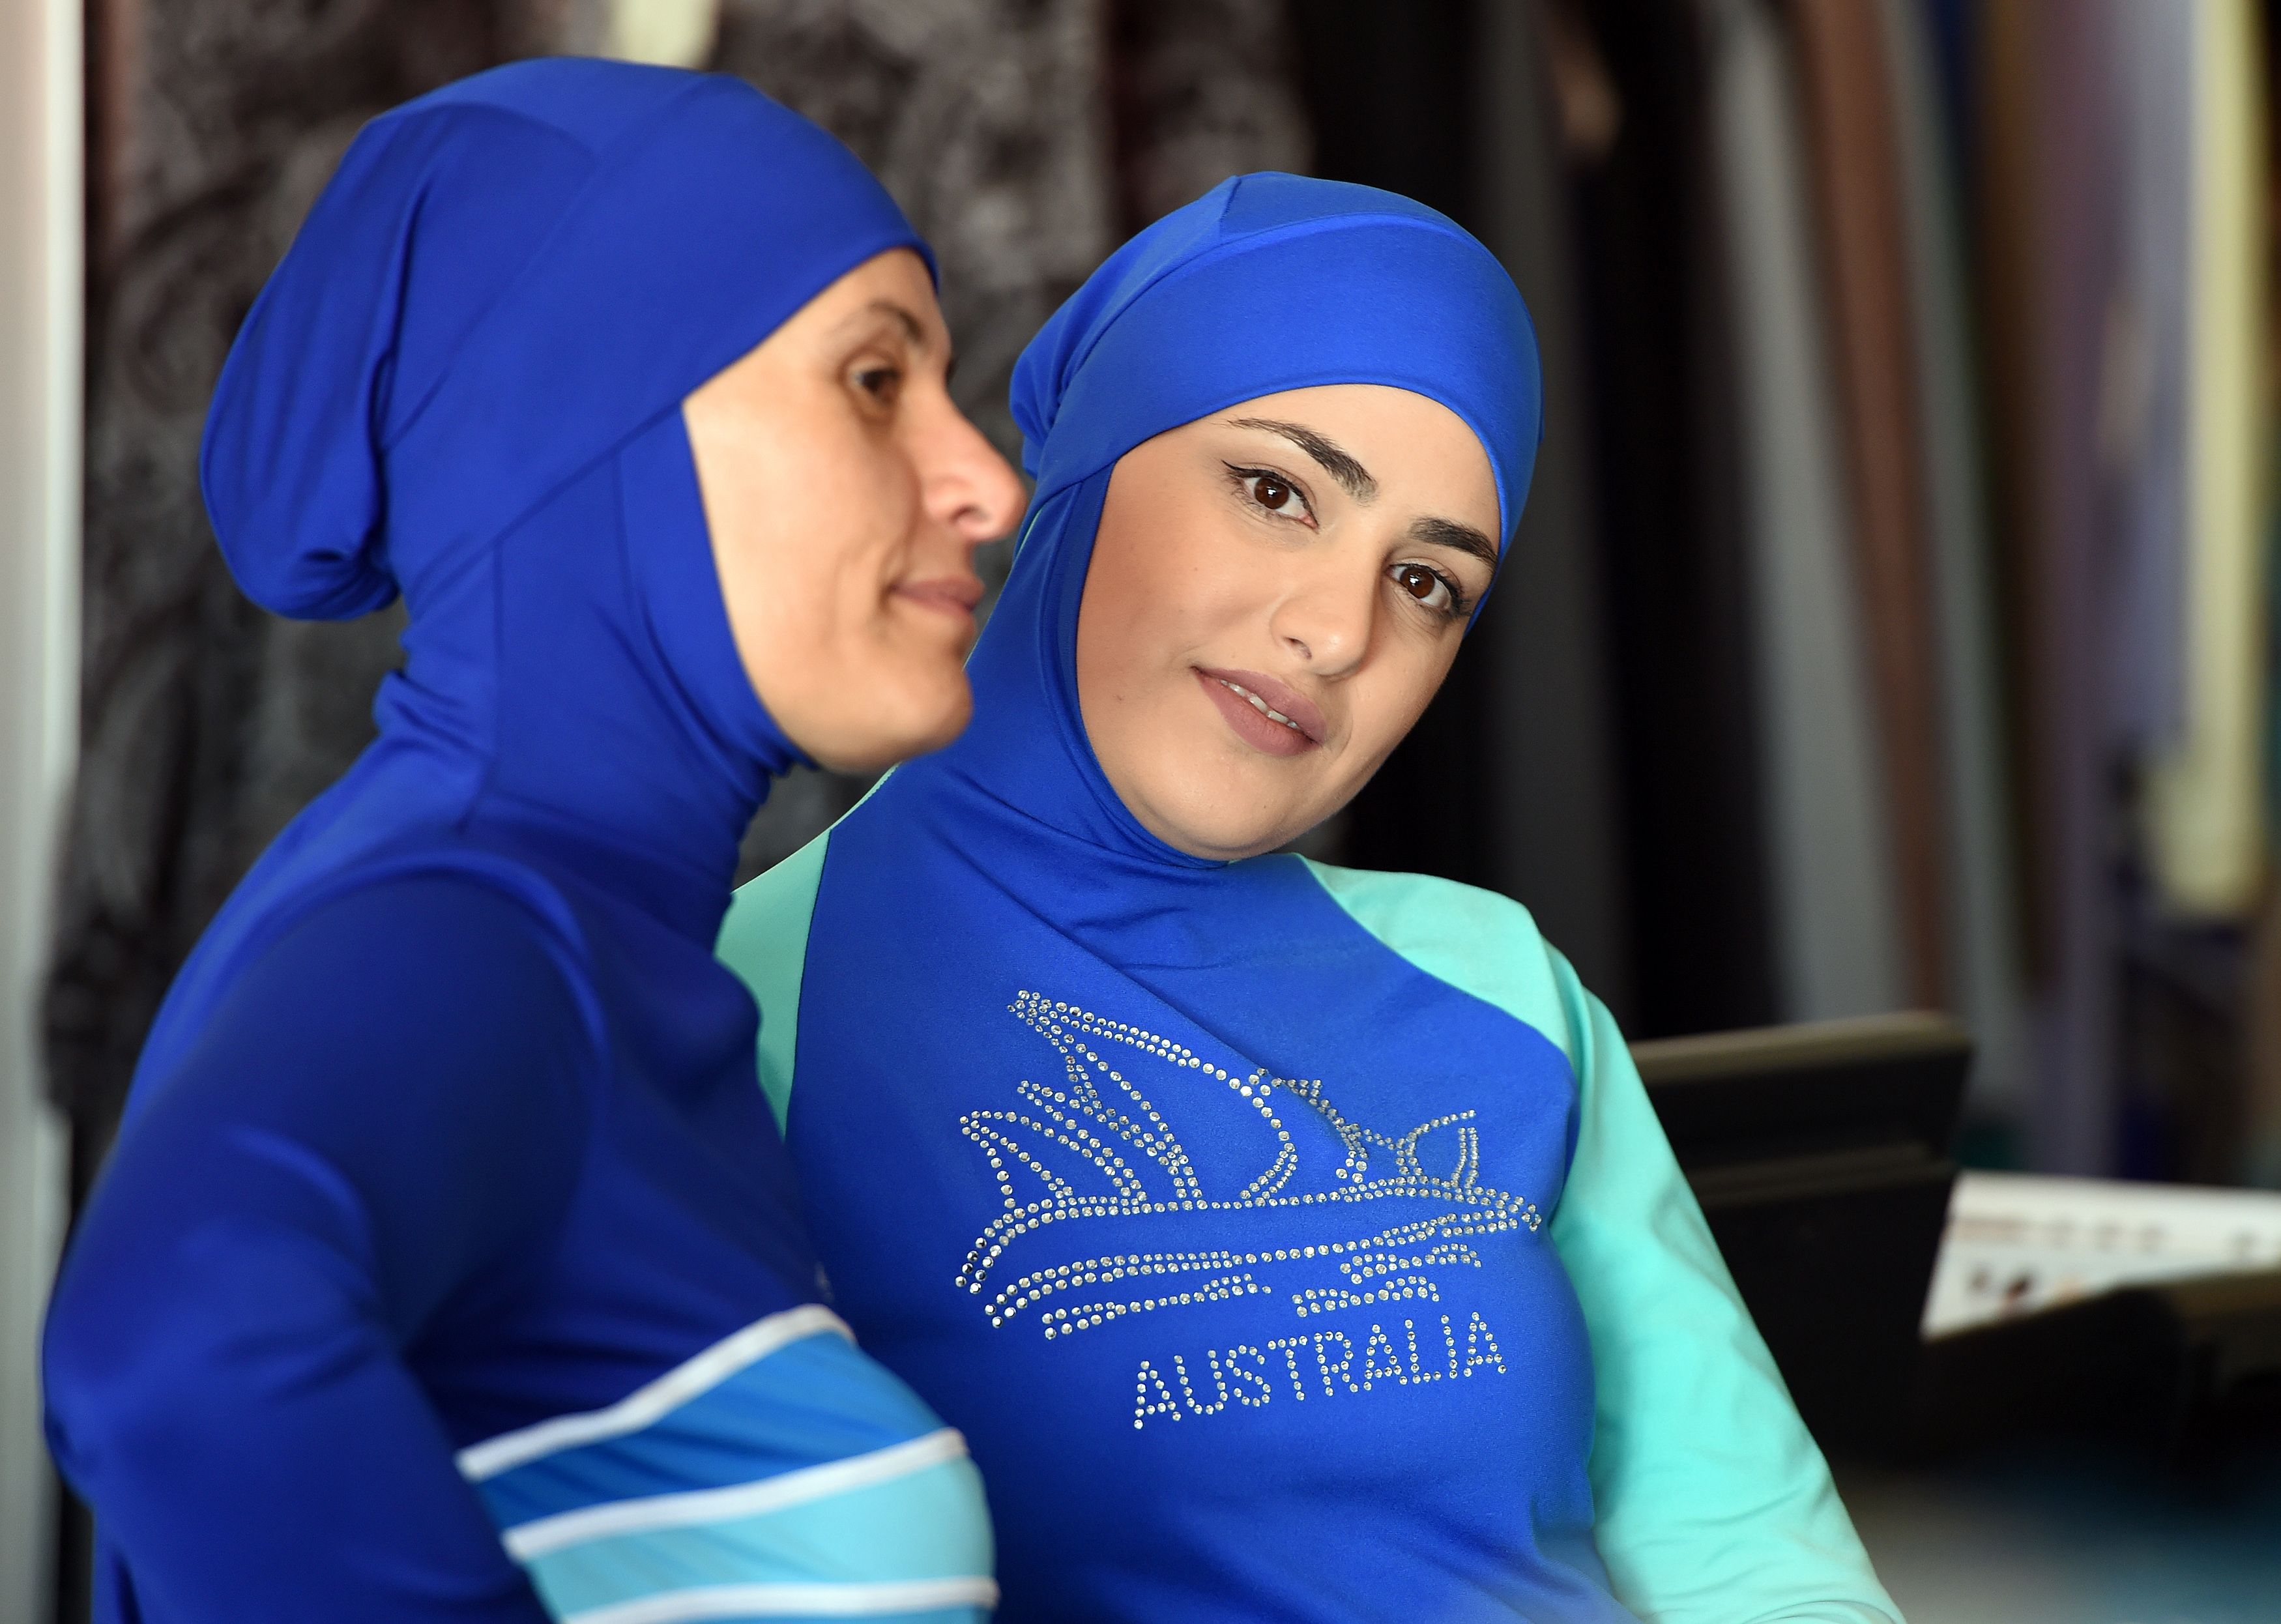 AUSTRALIA-FRANCE-ISLAM-CLOTHING-MUSLIM-LIFESTYLE